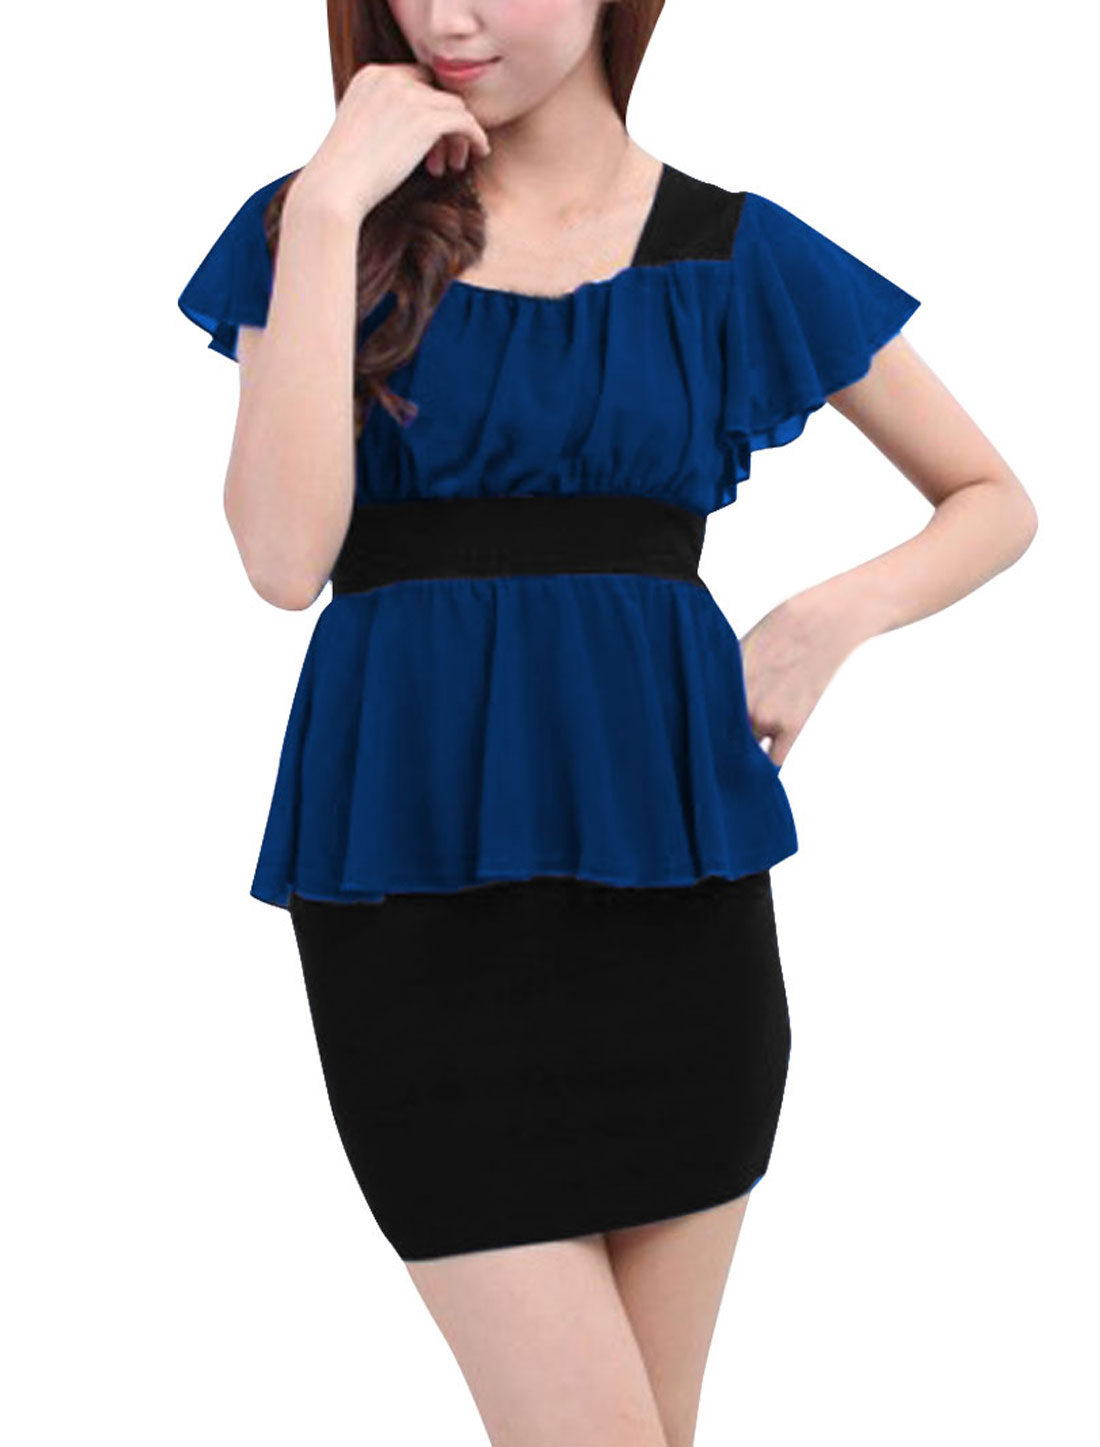 Women Square Neck Butterfly Sleeves Paneled Peplum Dress Blue Black XS